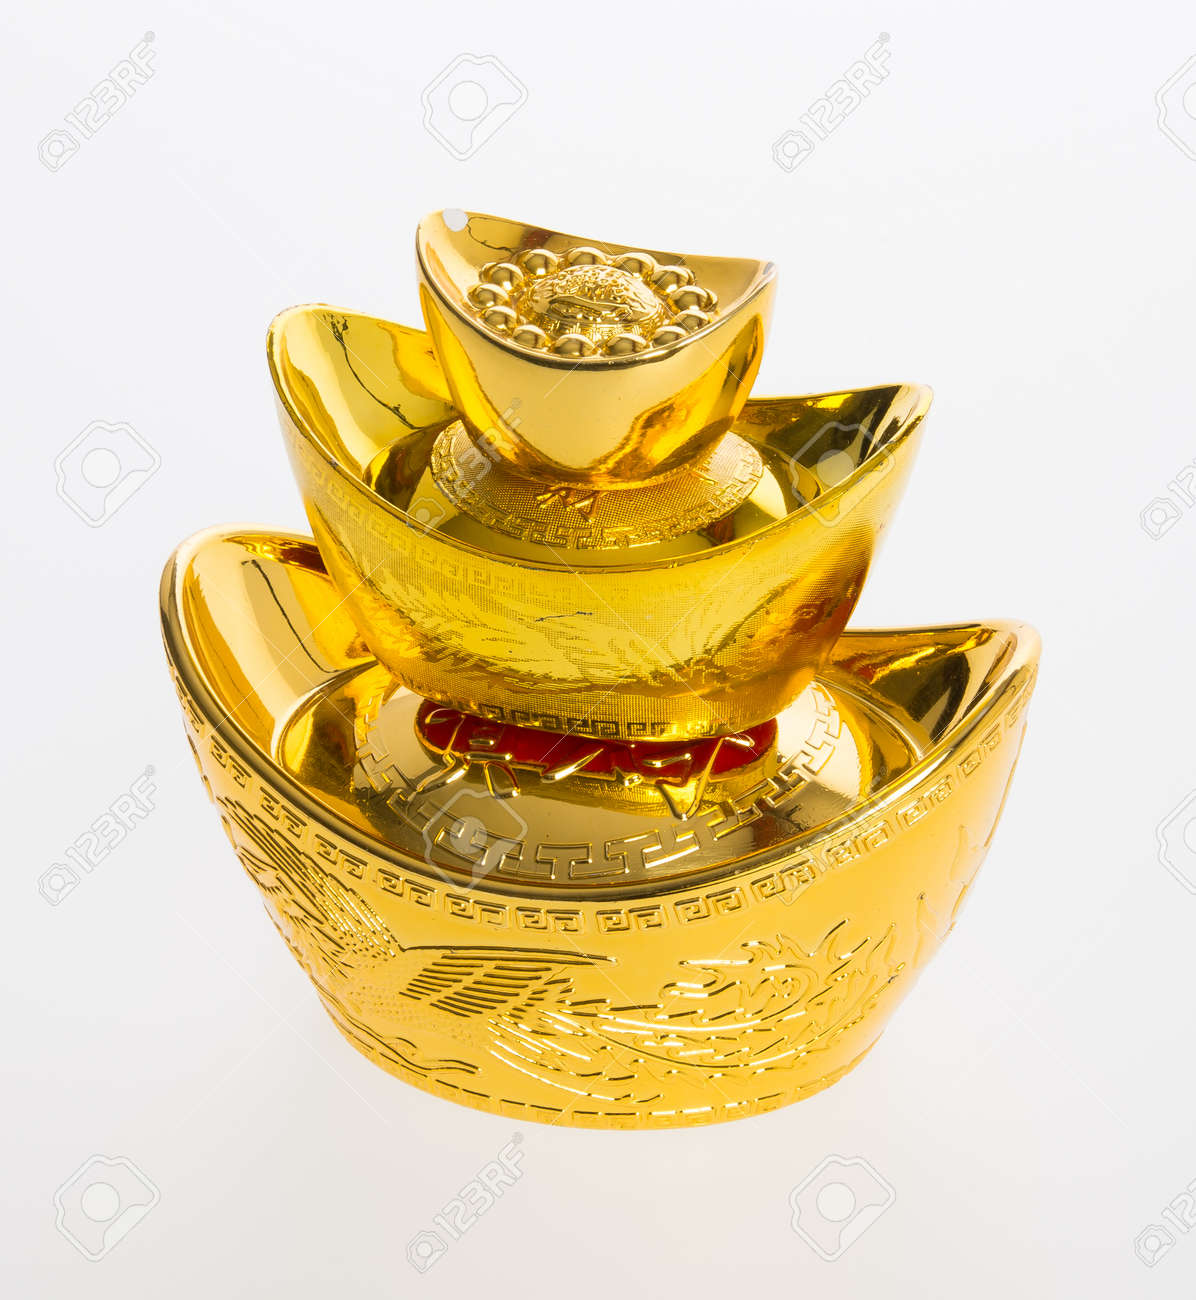 Gold or chinese gold ingot mean symbols of wealth and prosperity gold or chinese gold ingot mean symbols of wealth and prosperity on a background stock photo biocorpaavc Images